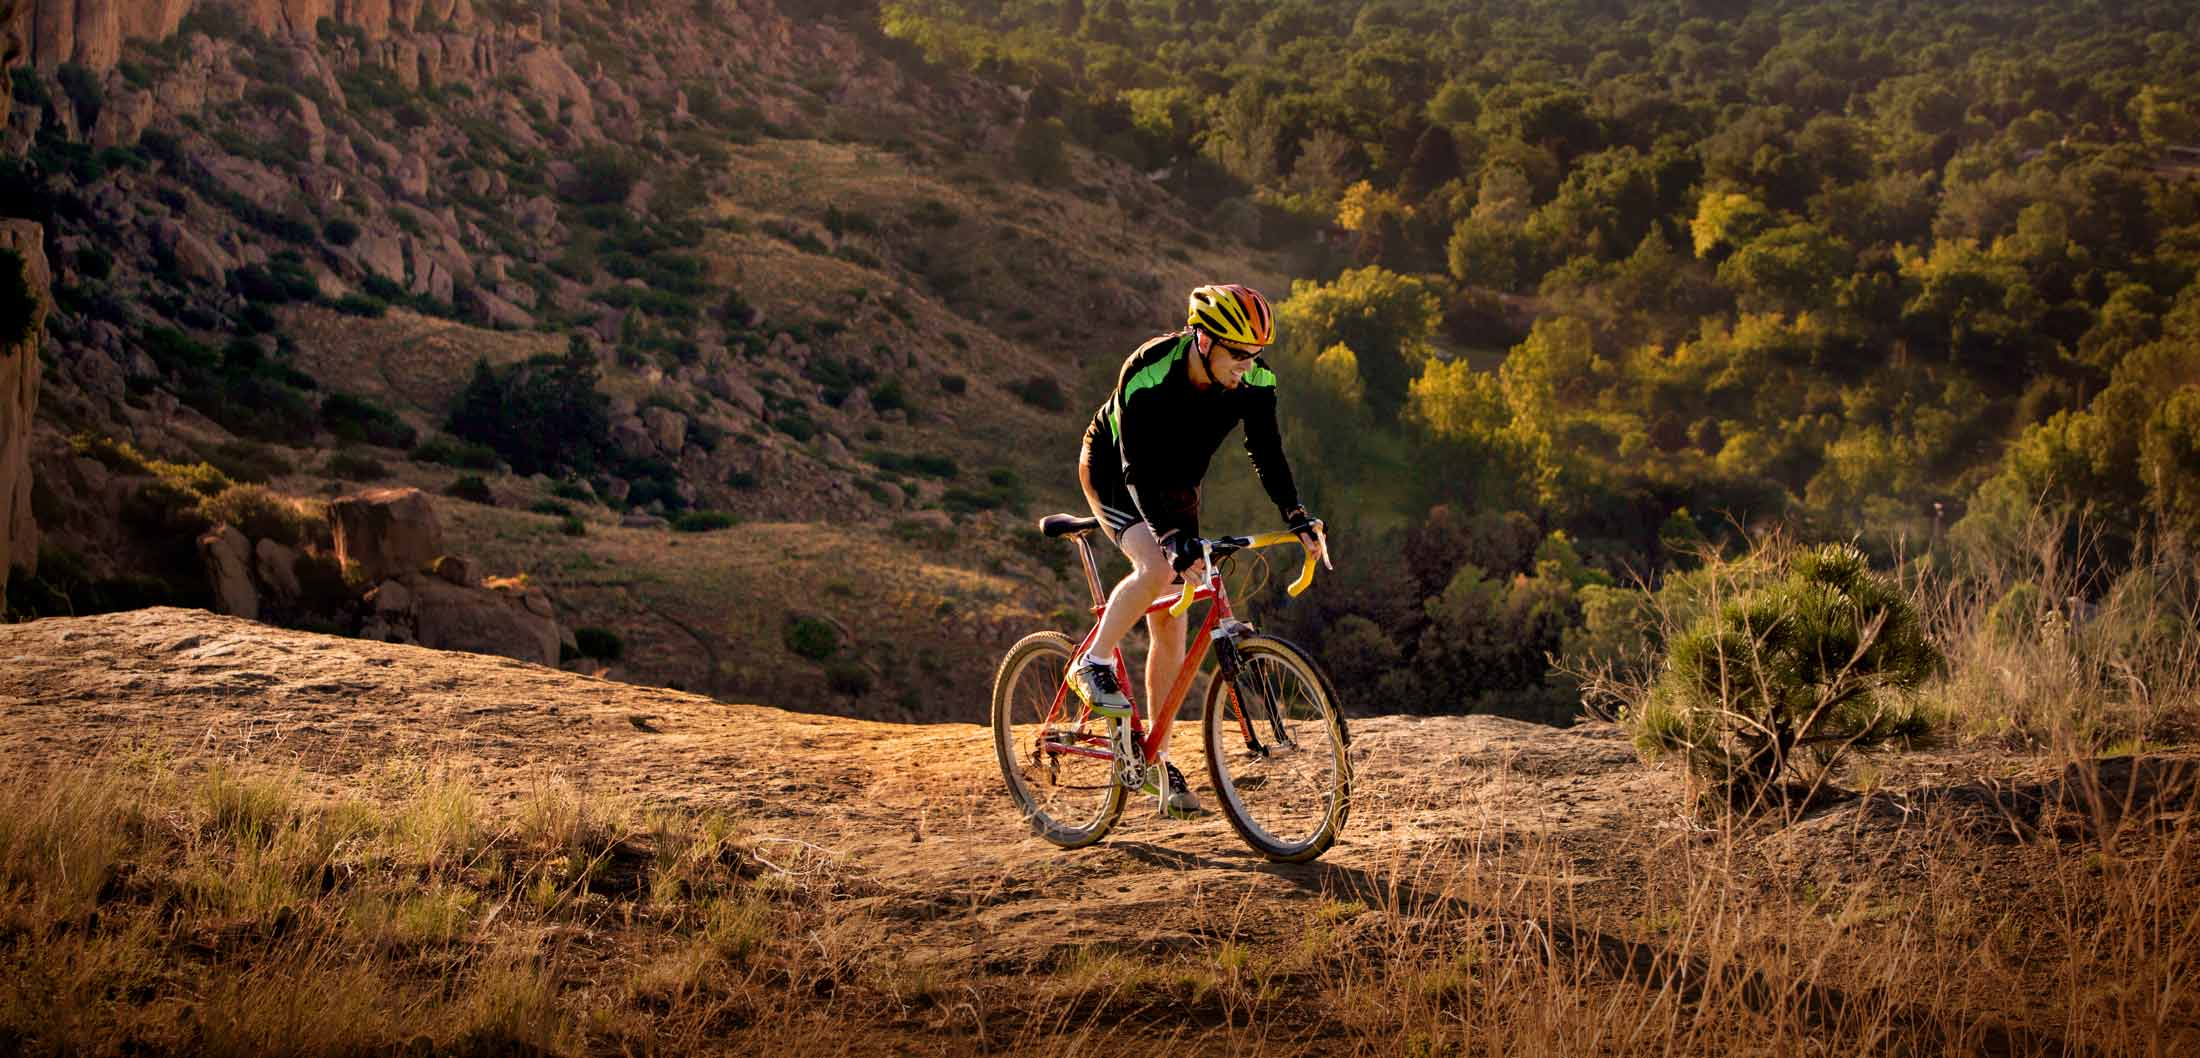 Biking in Southeast Montana: Where to Hit the Trails